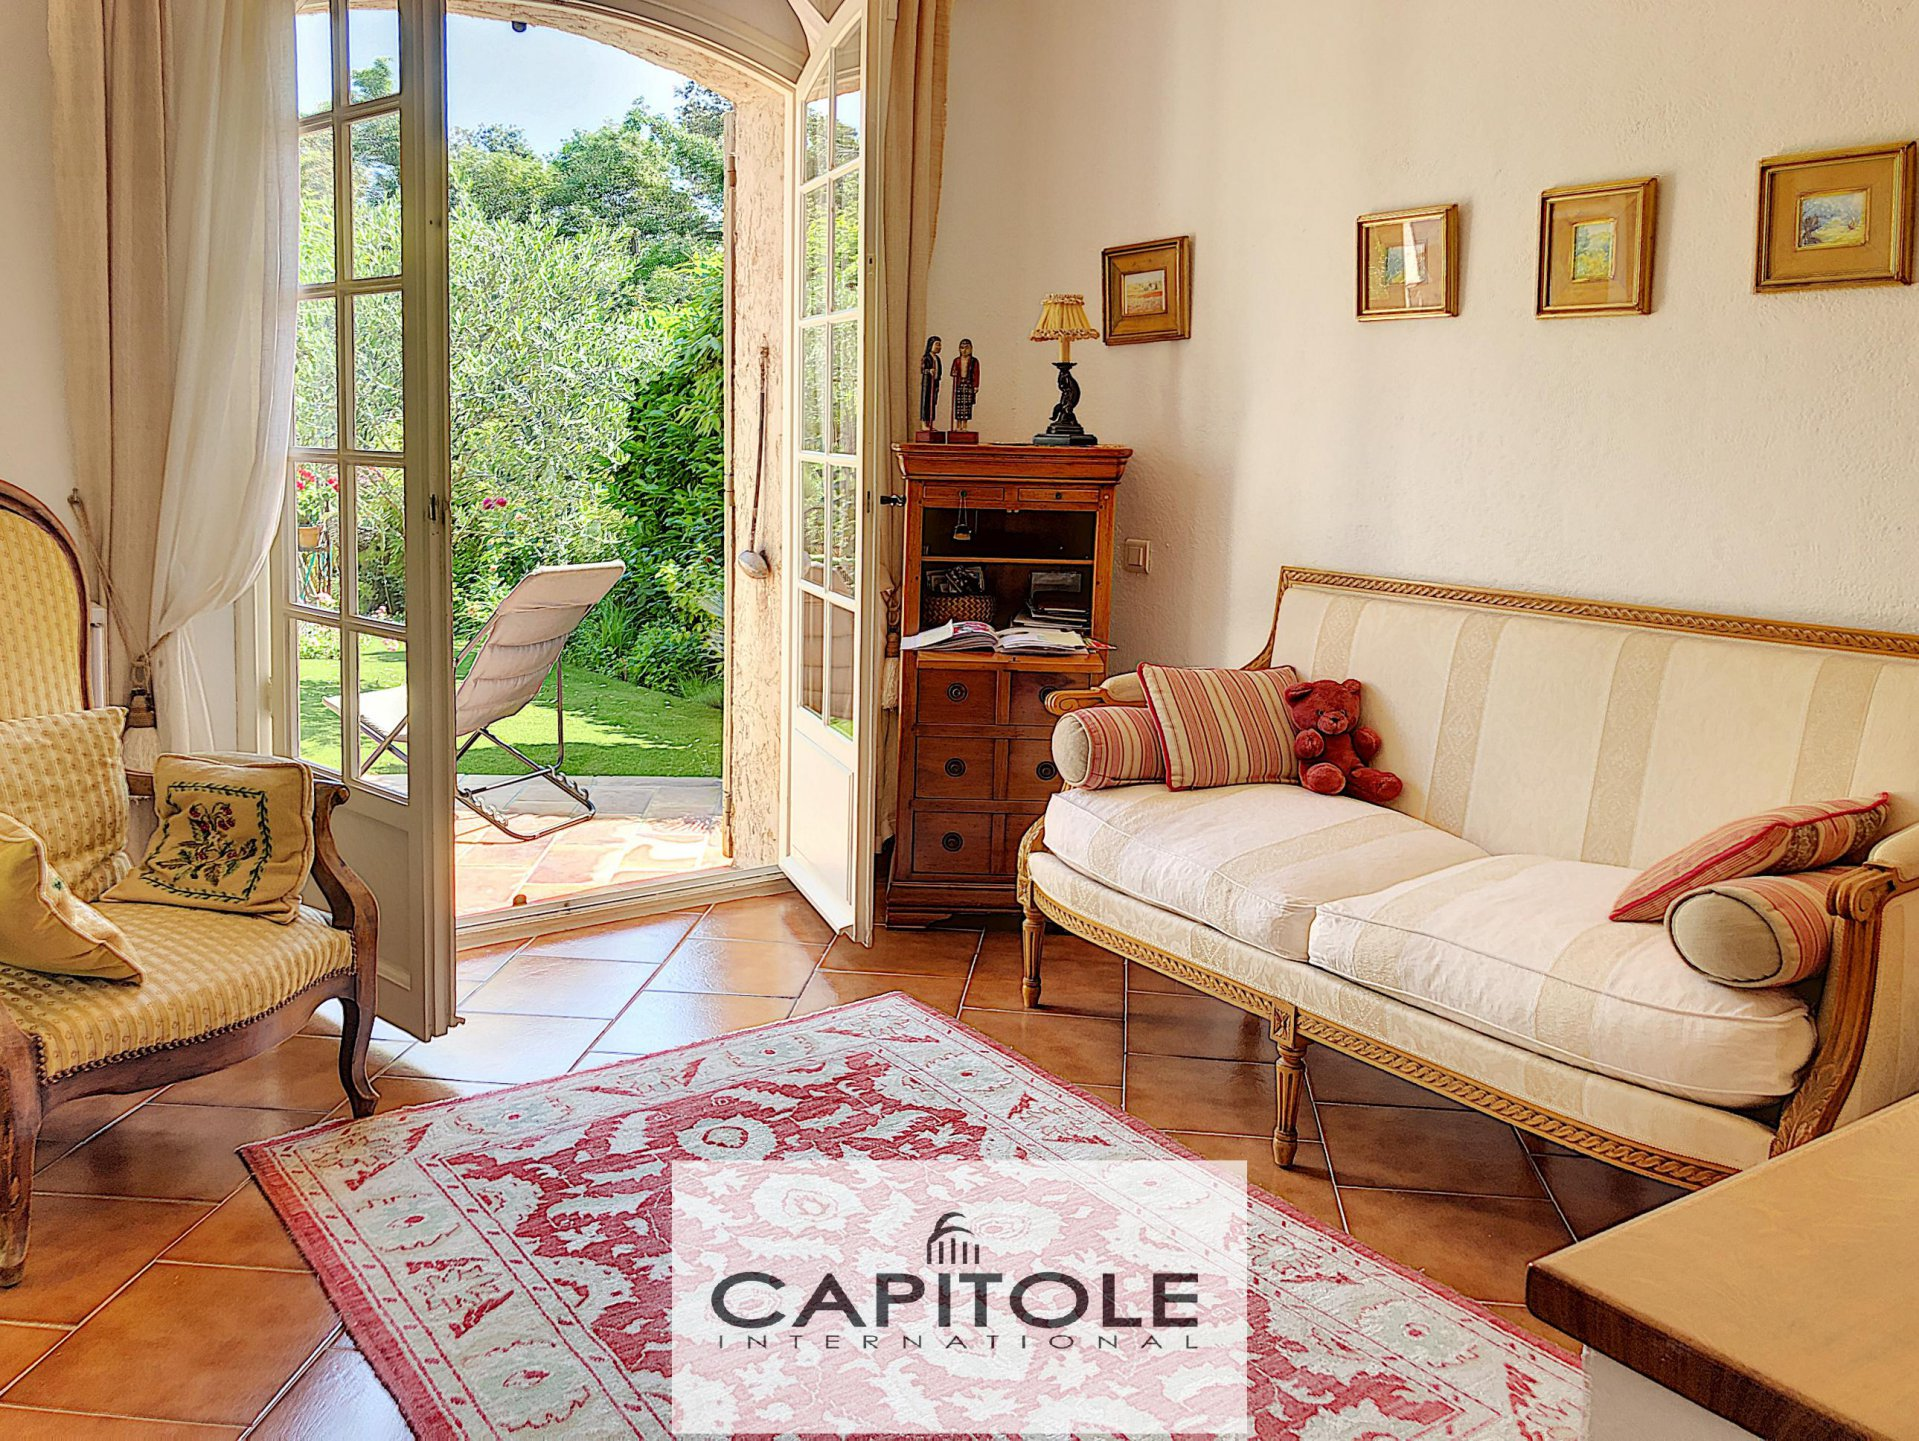 For sale, Antibes heights, superb 4 bedroom villa, garage, private domain